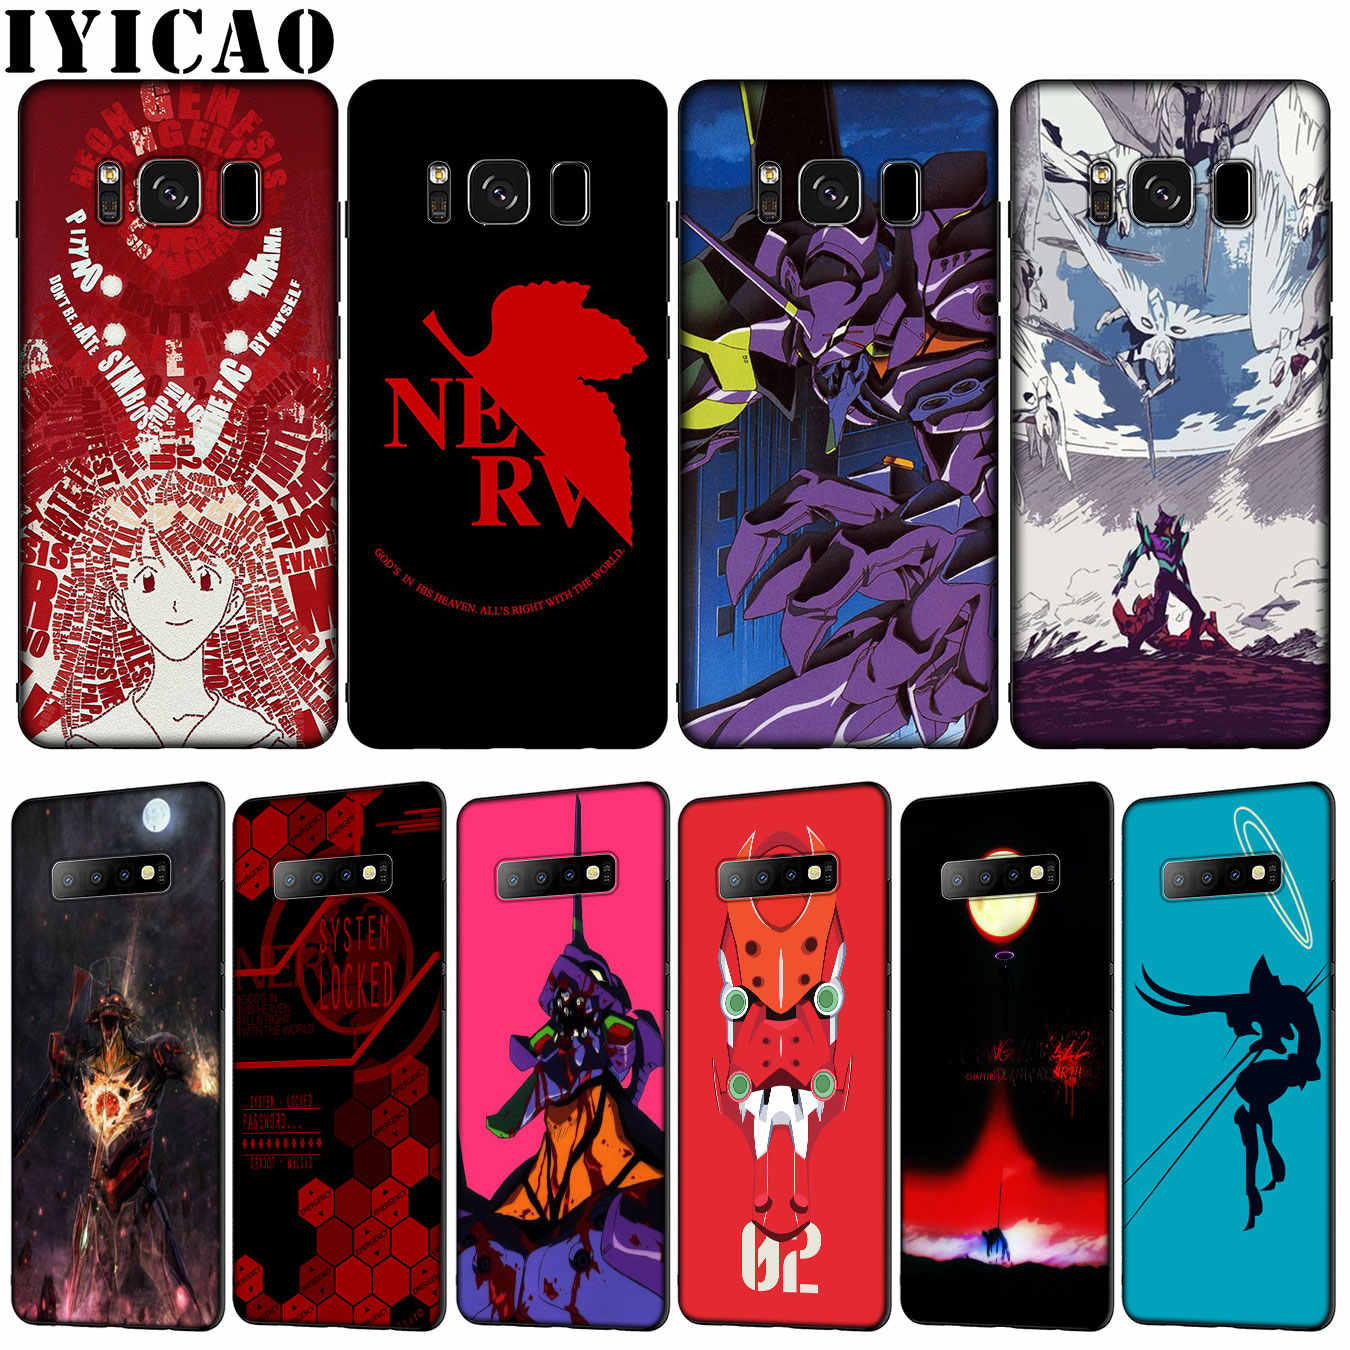 Iyicao Genesis Evangelion Anime Mềm TPU Dẻo Silicone Ốp Lưng Điện Thoại Samsung Galaxy S20 Cực S10 Lite S9 S8 Plus S6 s7 Edge S10e